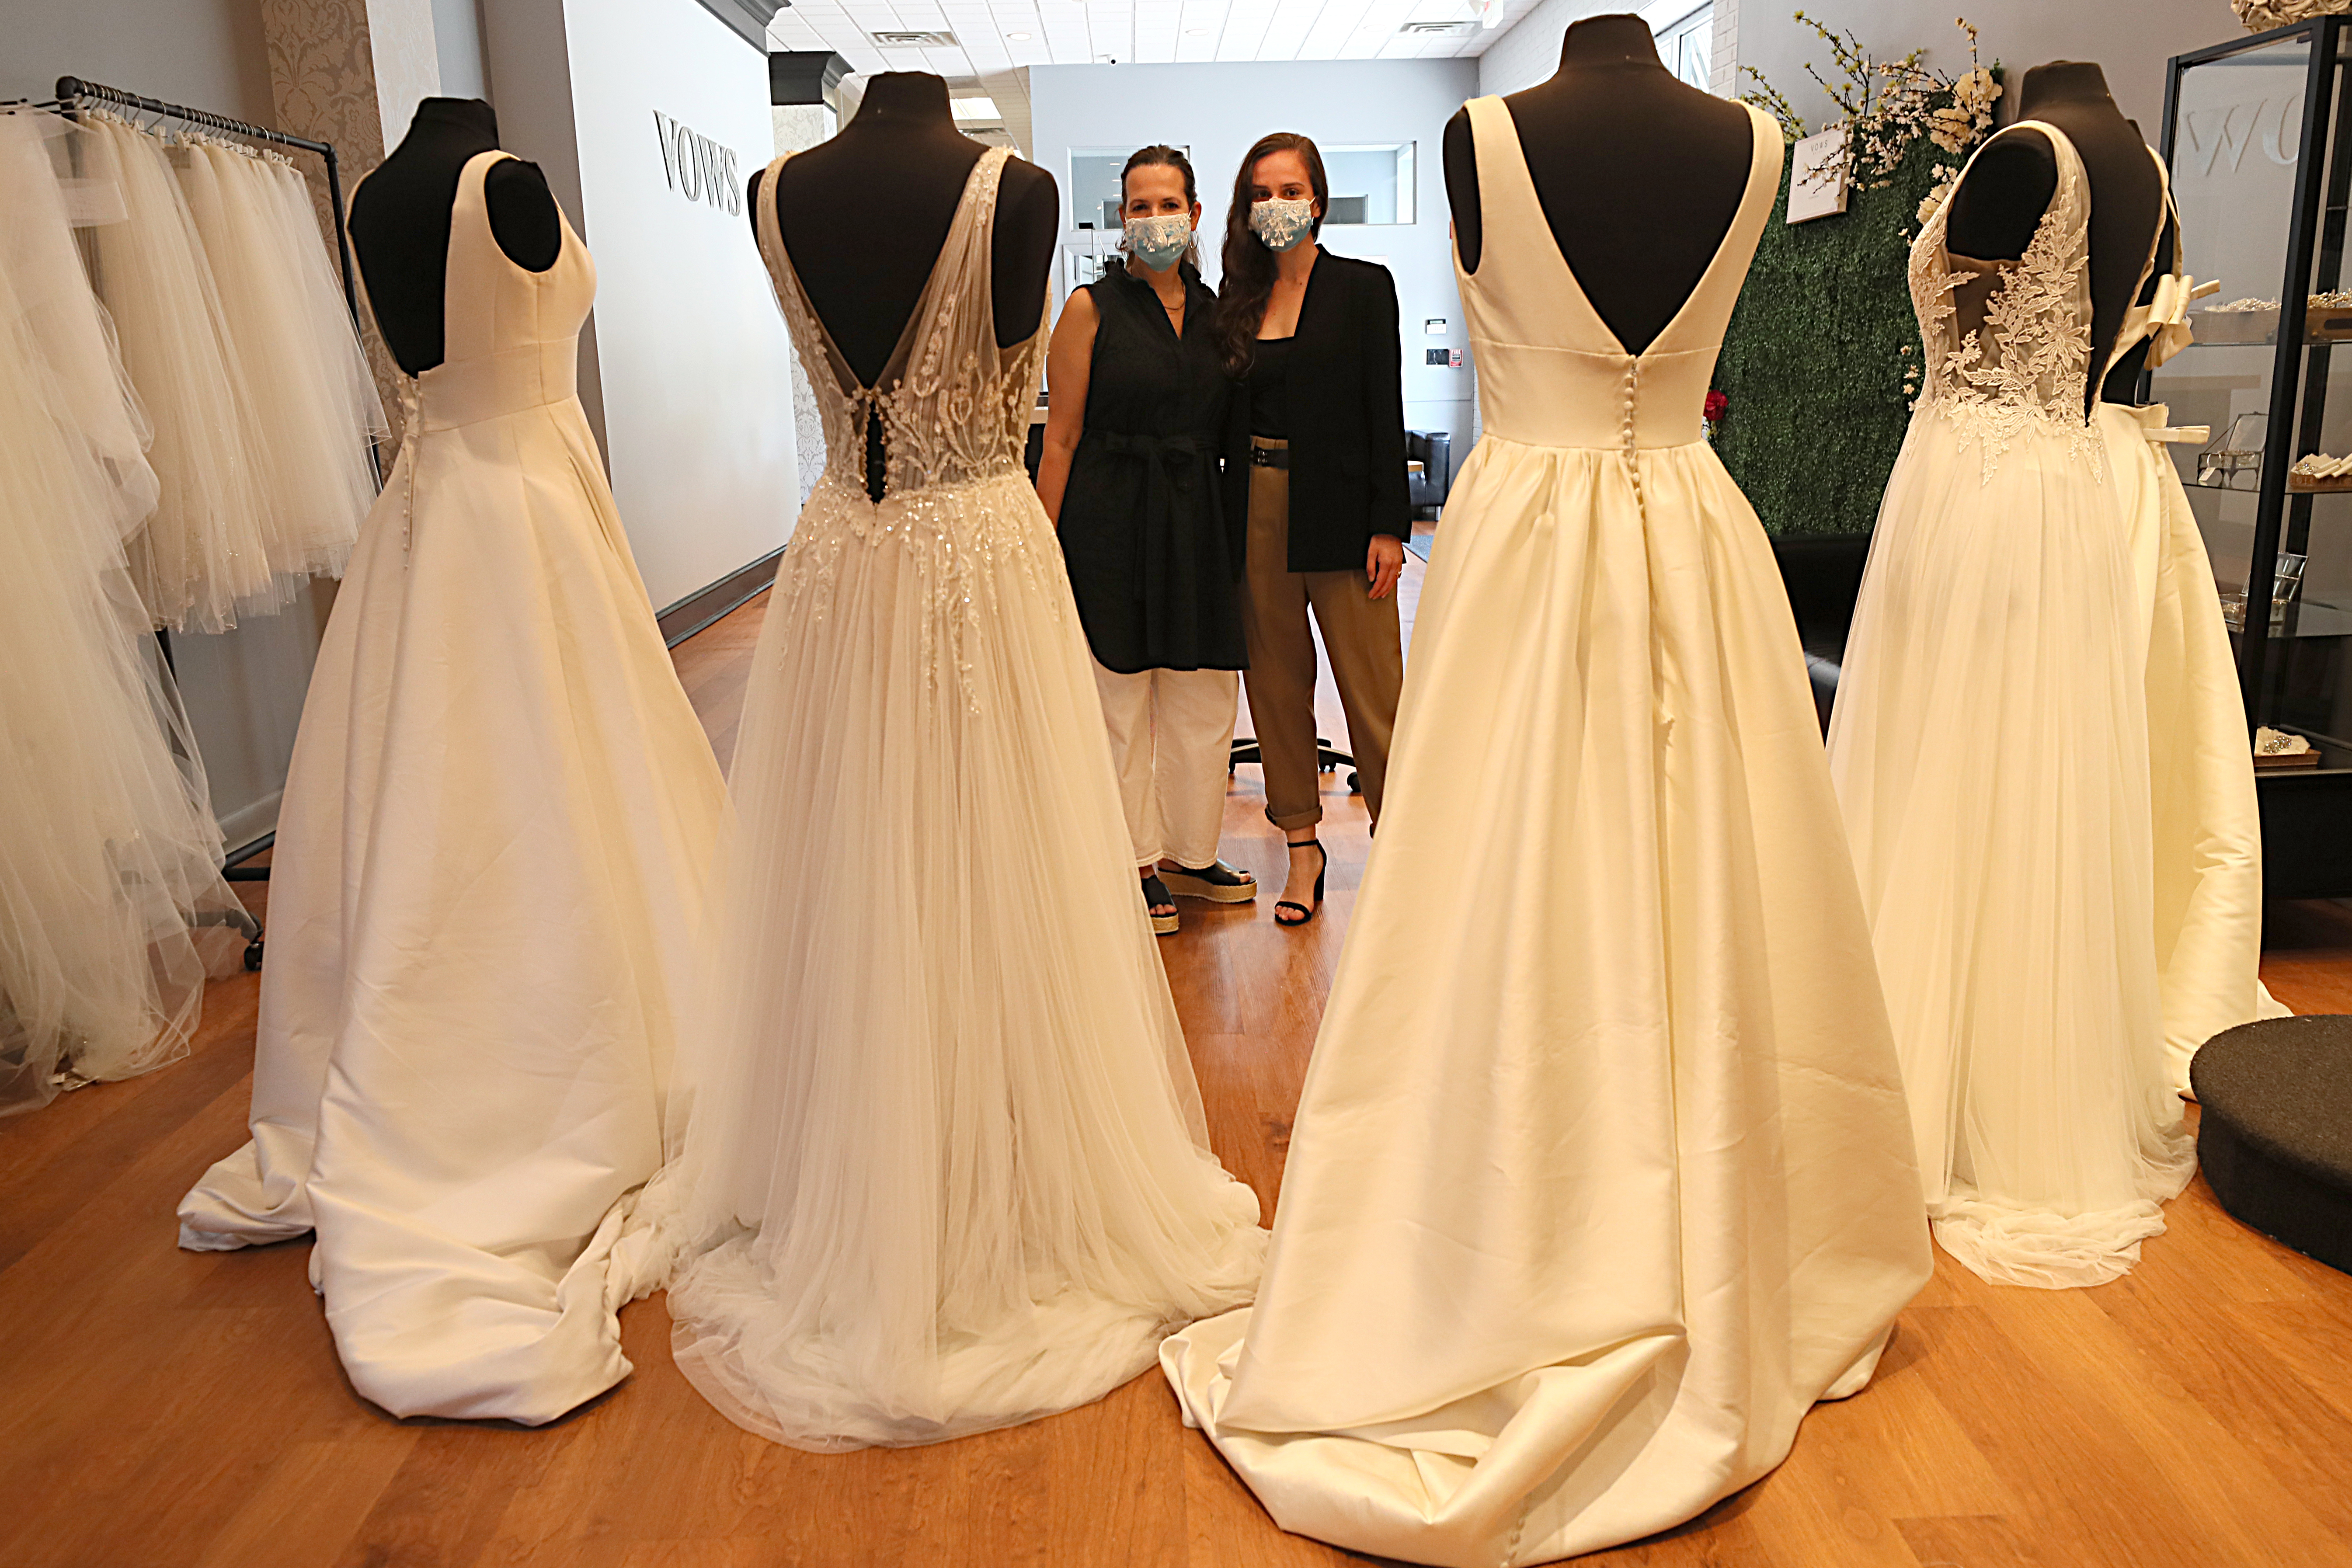 The No Fitting Room Policy Is Having Rippling Effects On Bridal Shops And Tailors Across Mass The Boston Globe